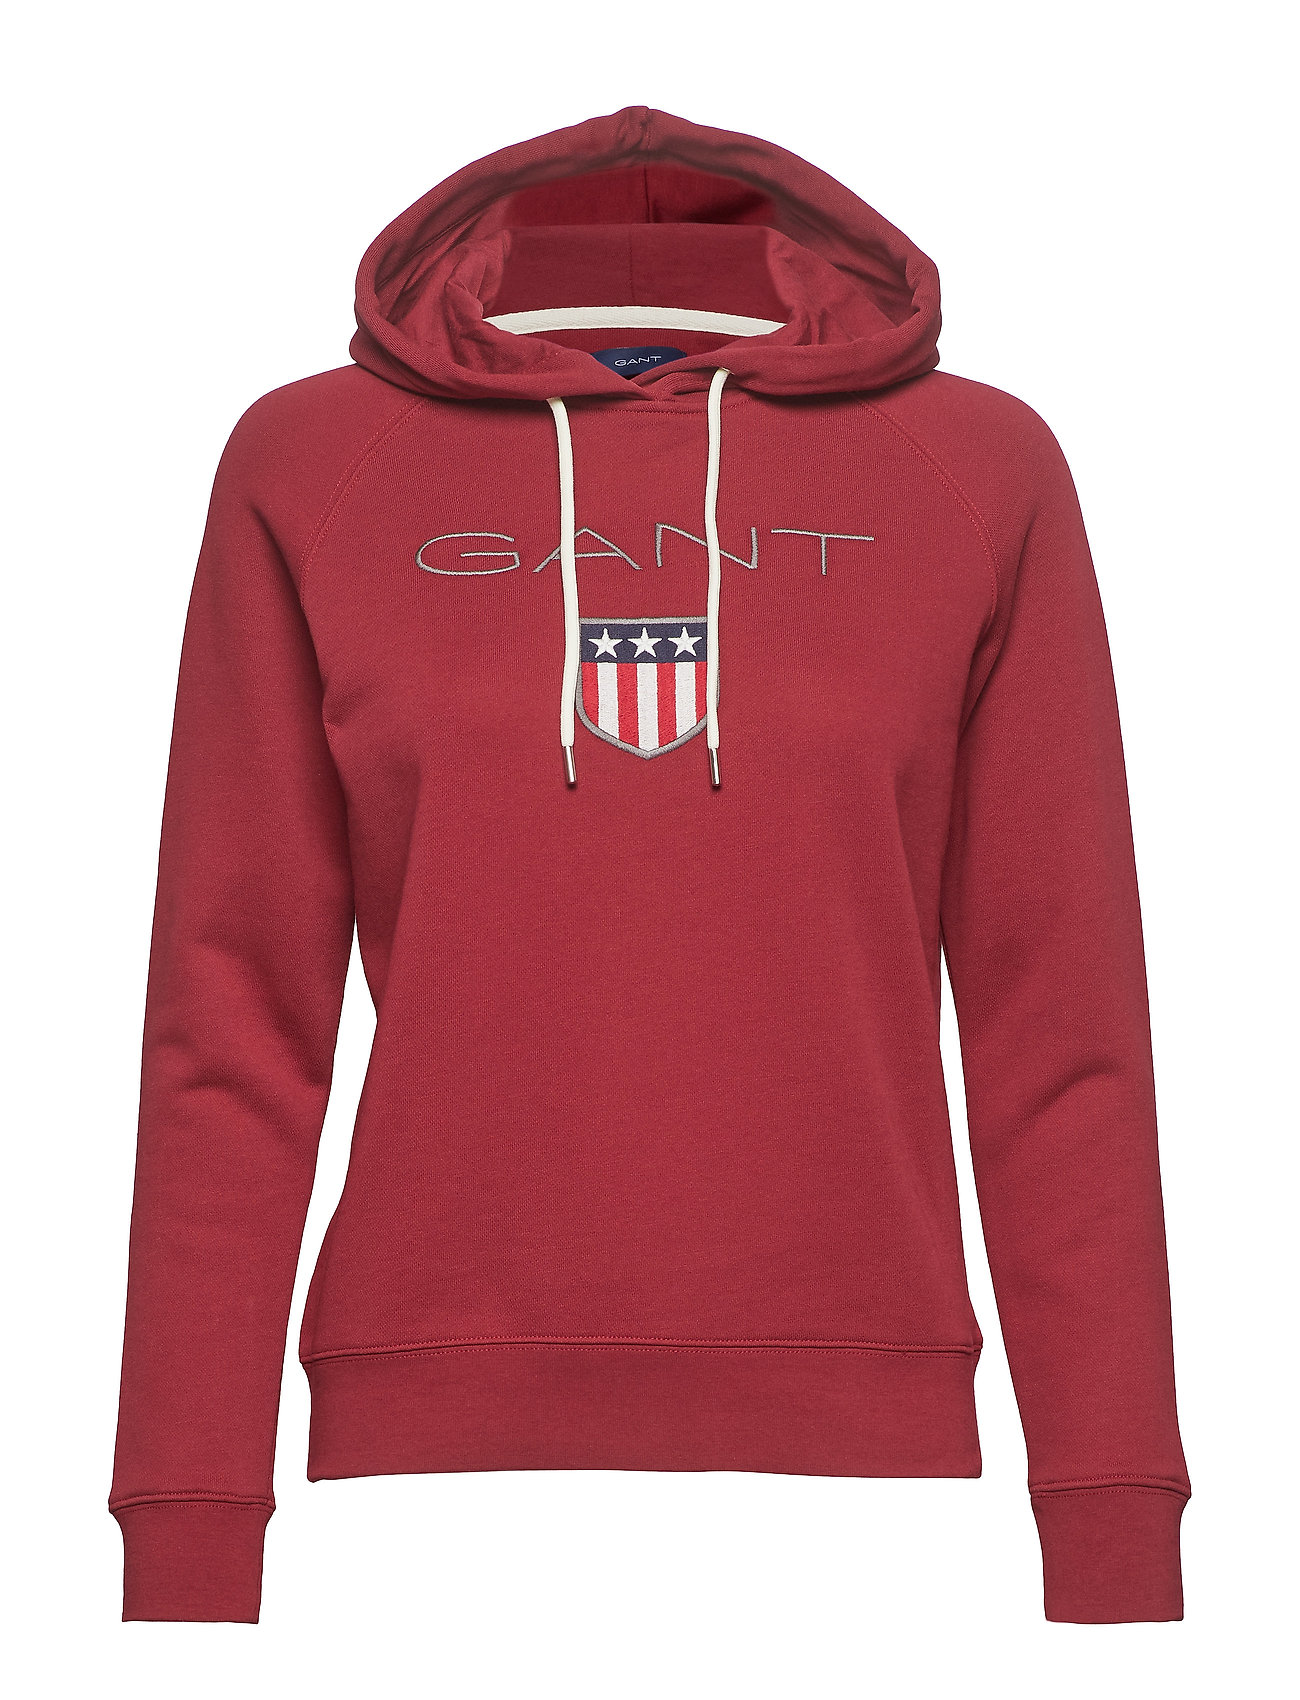 GANT GANT SHIELD SWEAT HOODIE - MAHOGNY RED